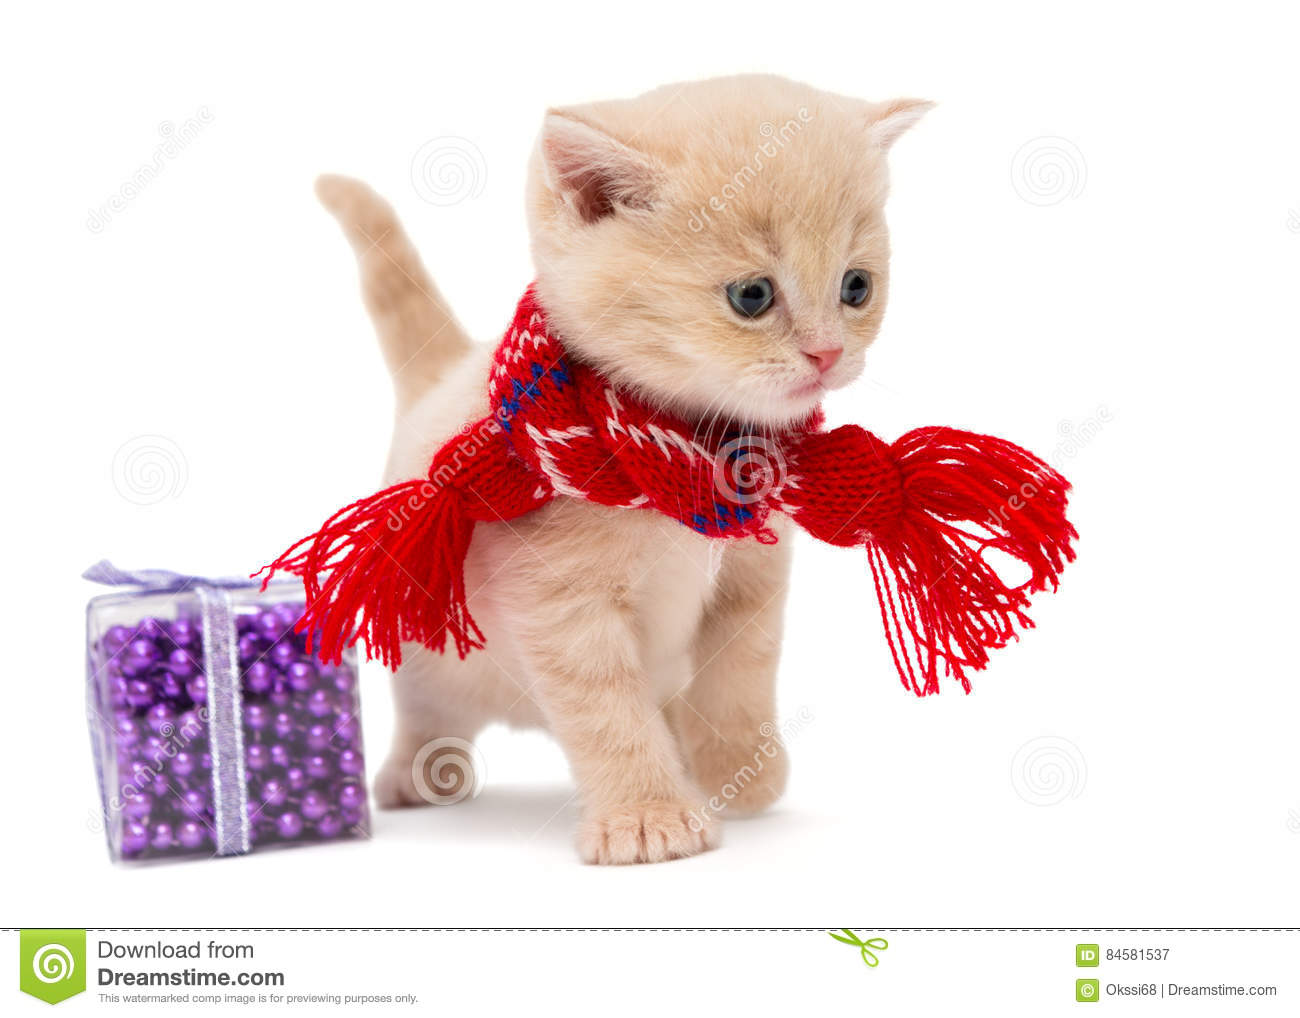 Cute kitten breeds British stock image Image of pets